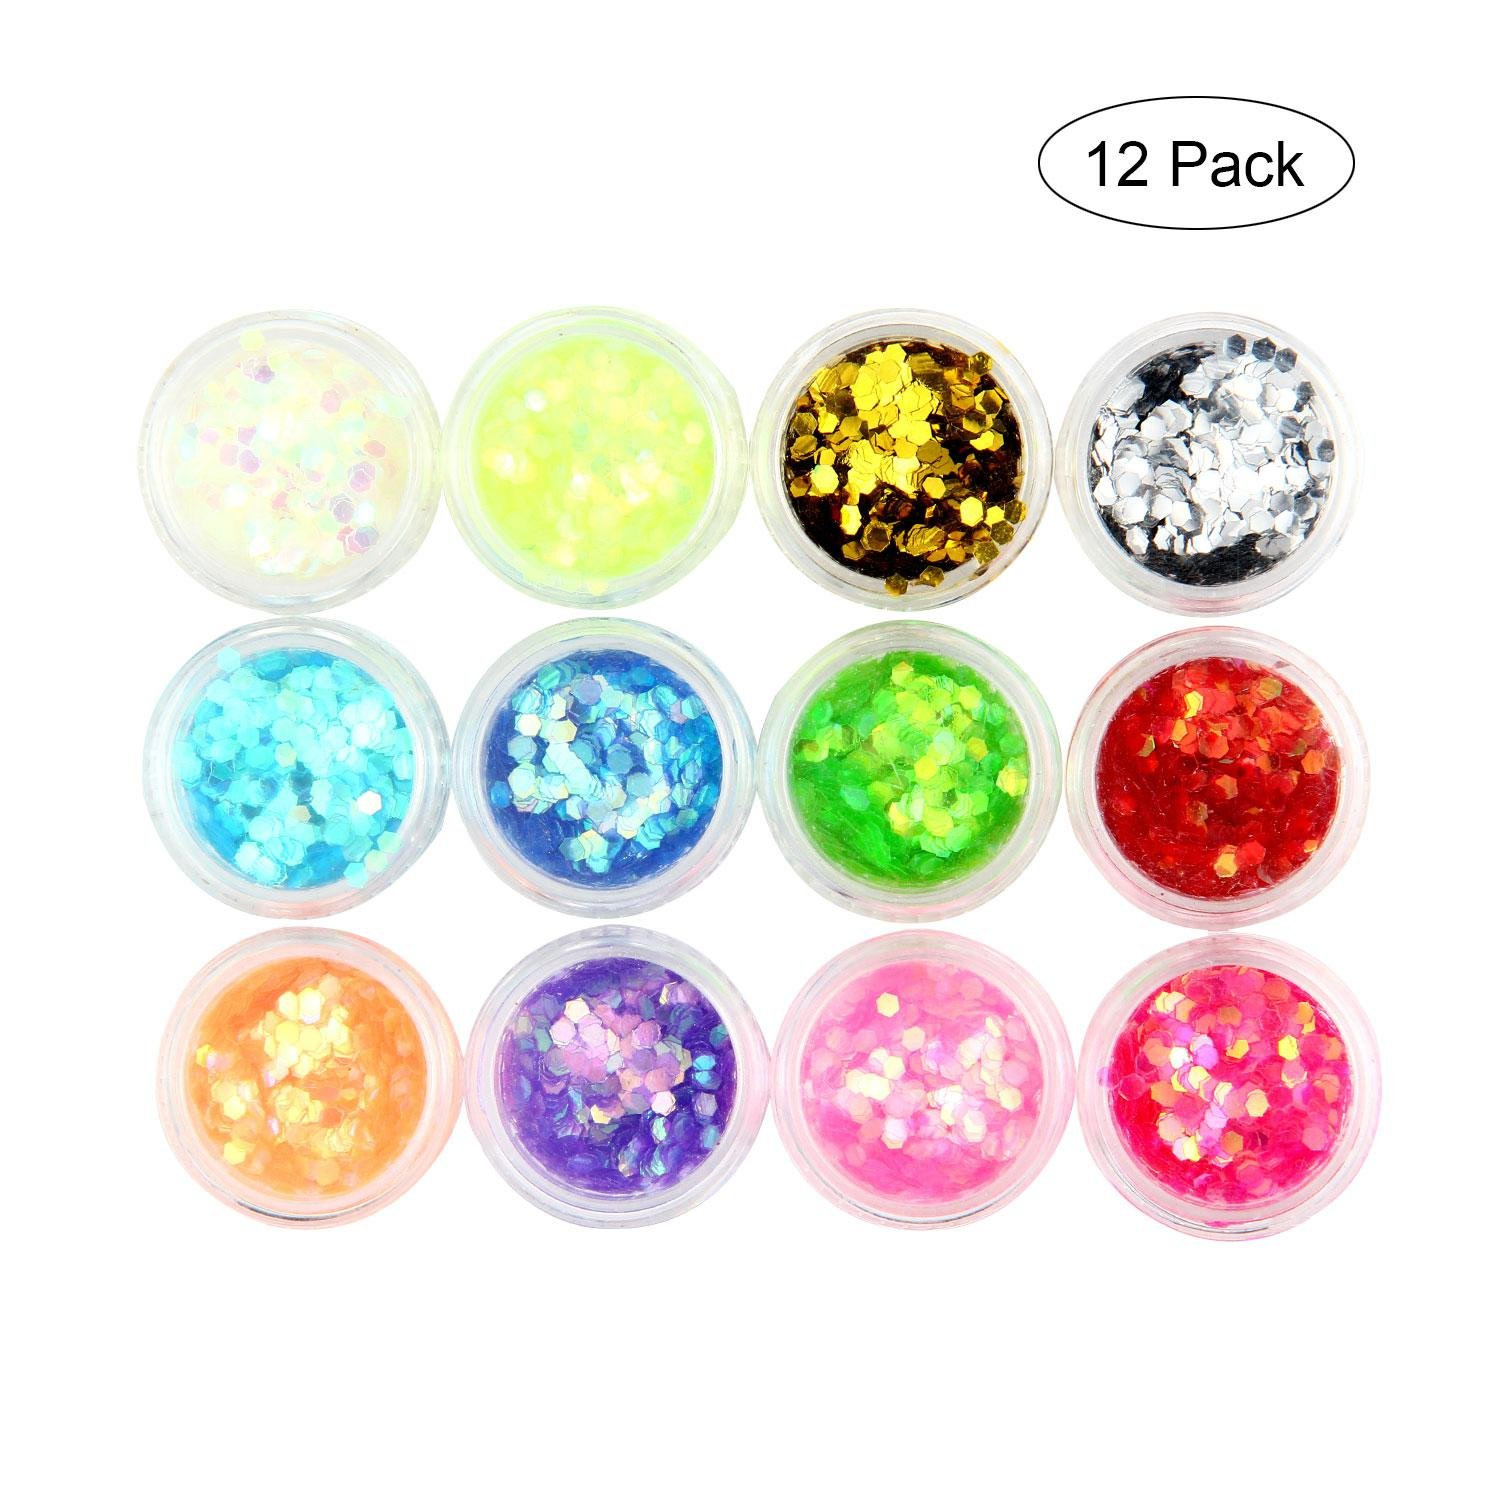 12 Pack Bio Glitter Face - Womdee Eco UV Hexagon Cosmetic Chunky Glitter Sequin Stickers, Mixed Colors Shimmer for Face, Body, Nails, Hair, Making Up Phone, Party